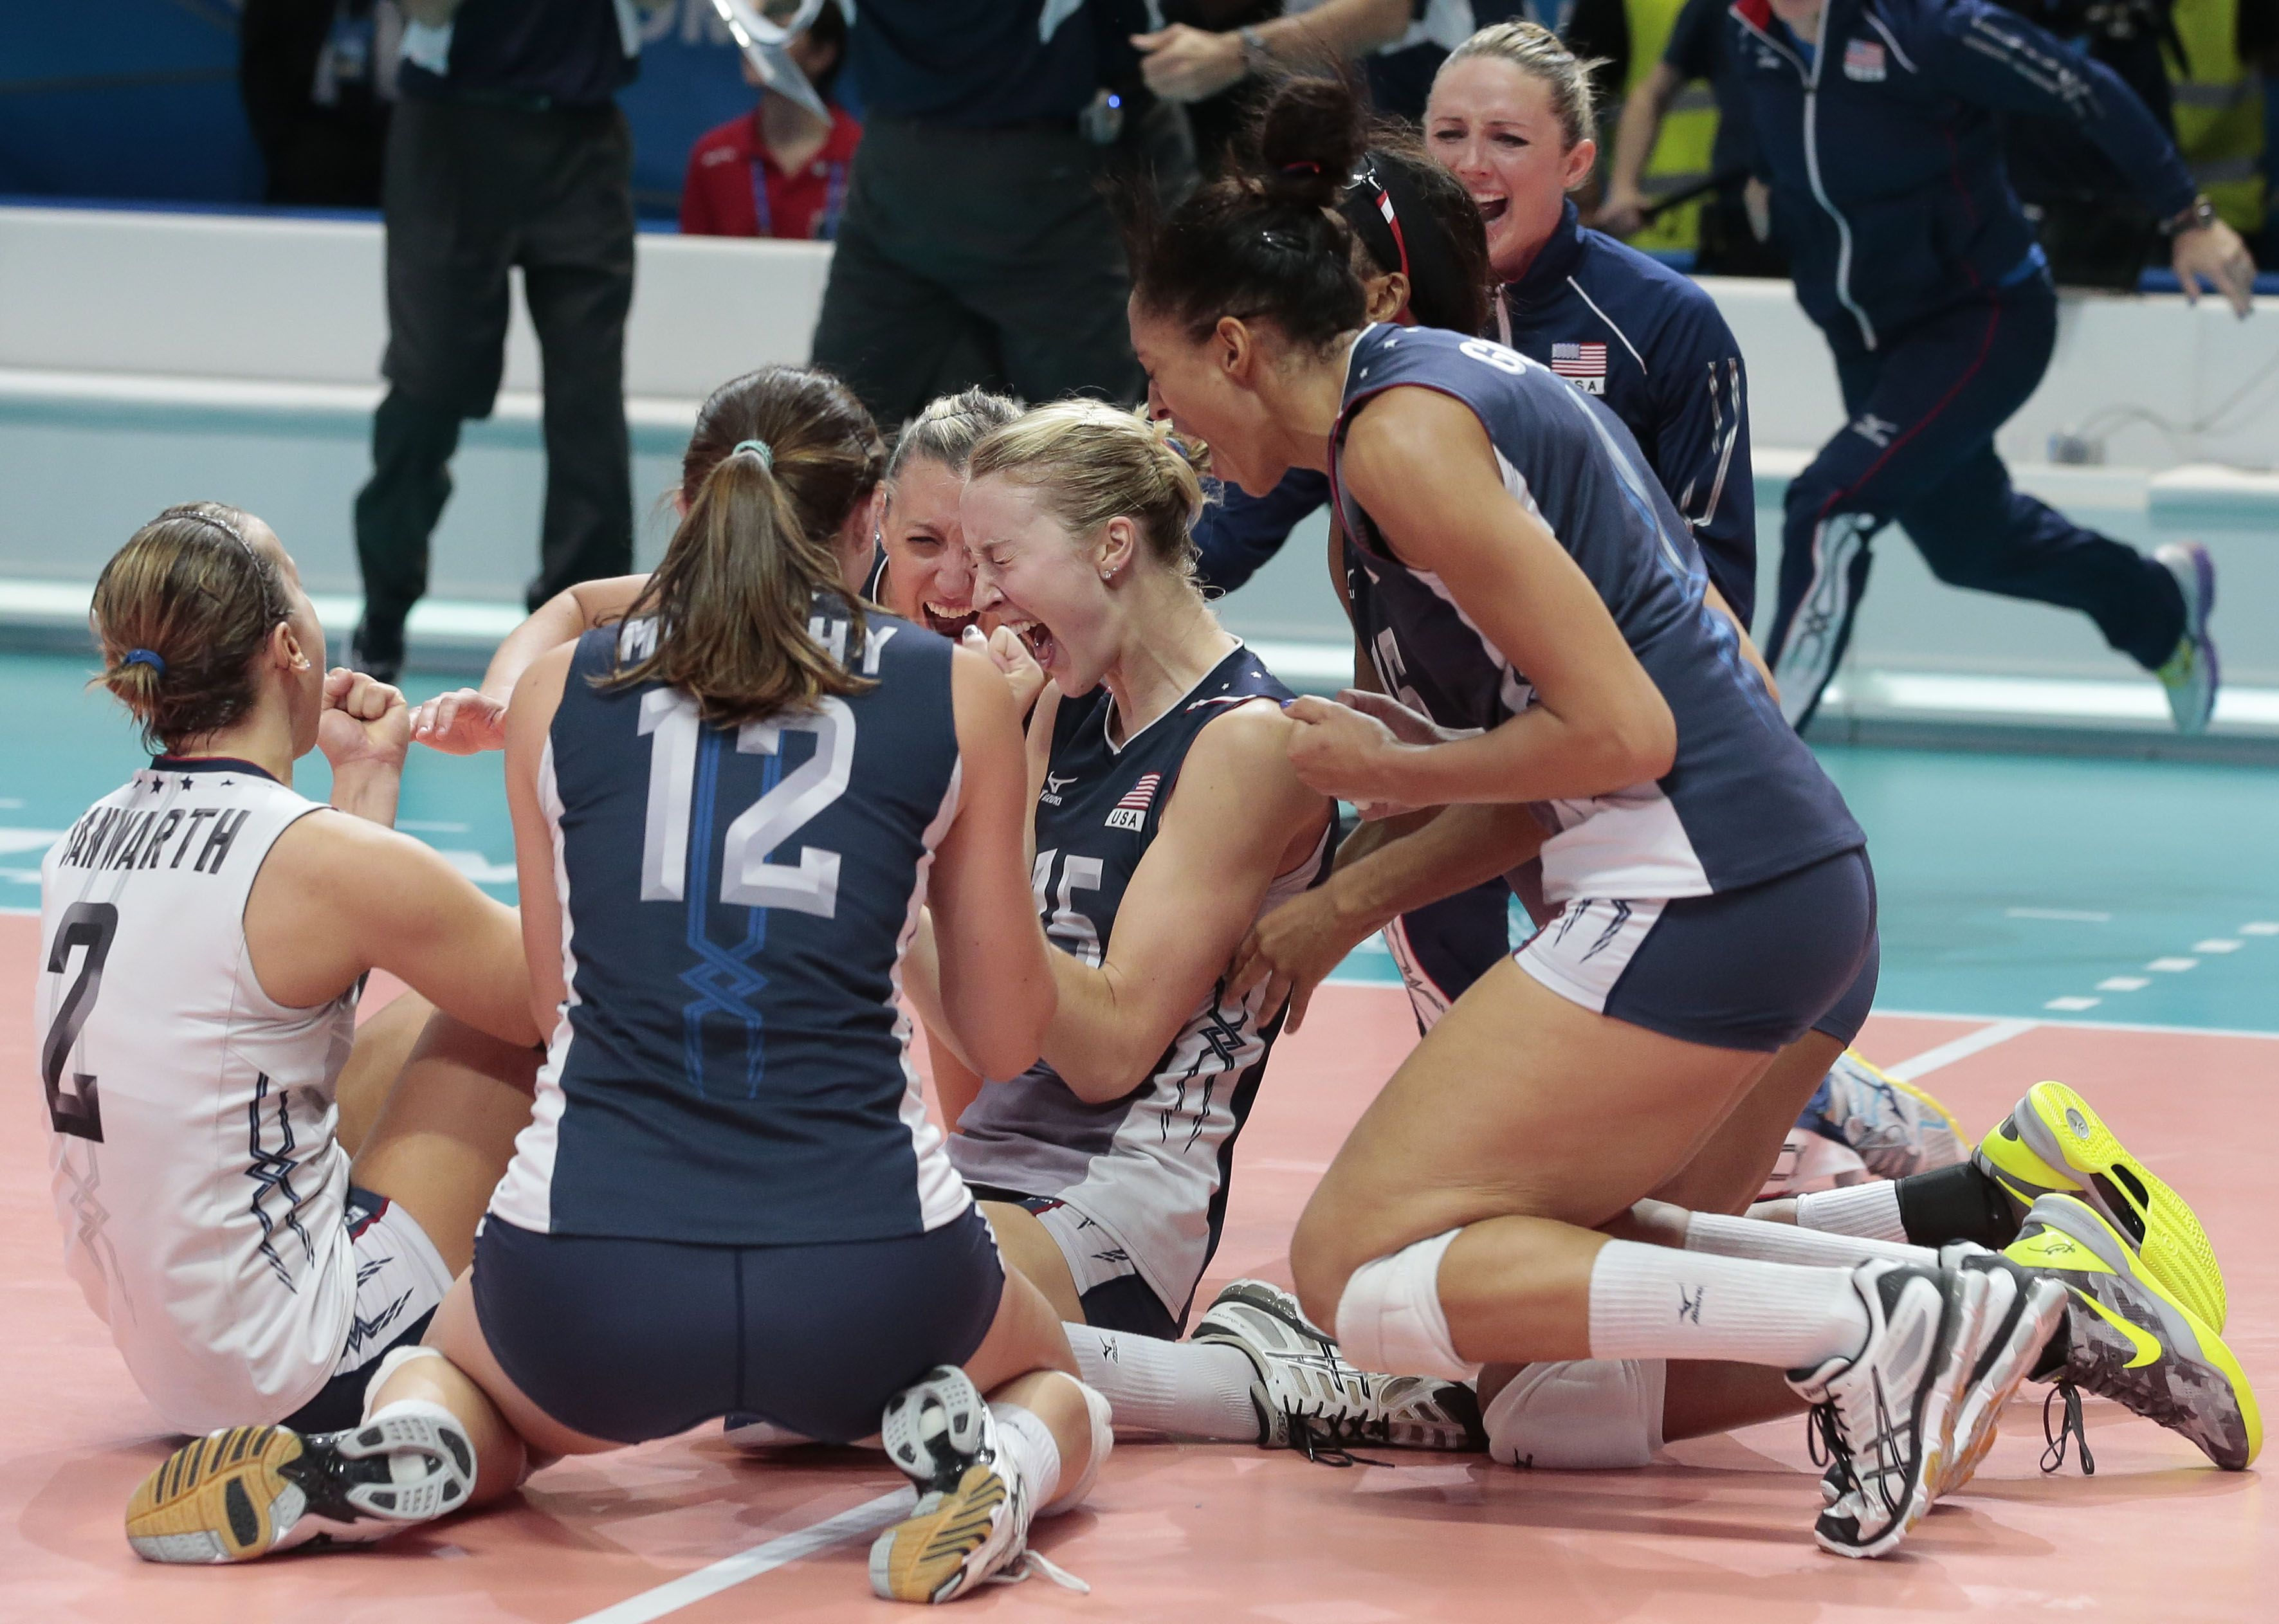 The United States Women S Volleyball Team Wins It S First Major Title After Defeating China 3 1 In The Finals Of Th Women Volleyball Volleyball Volleyball Team